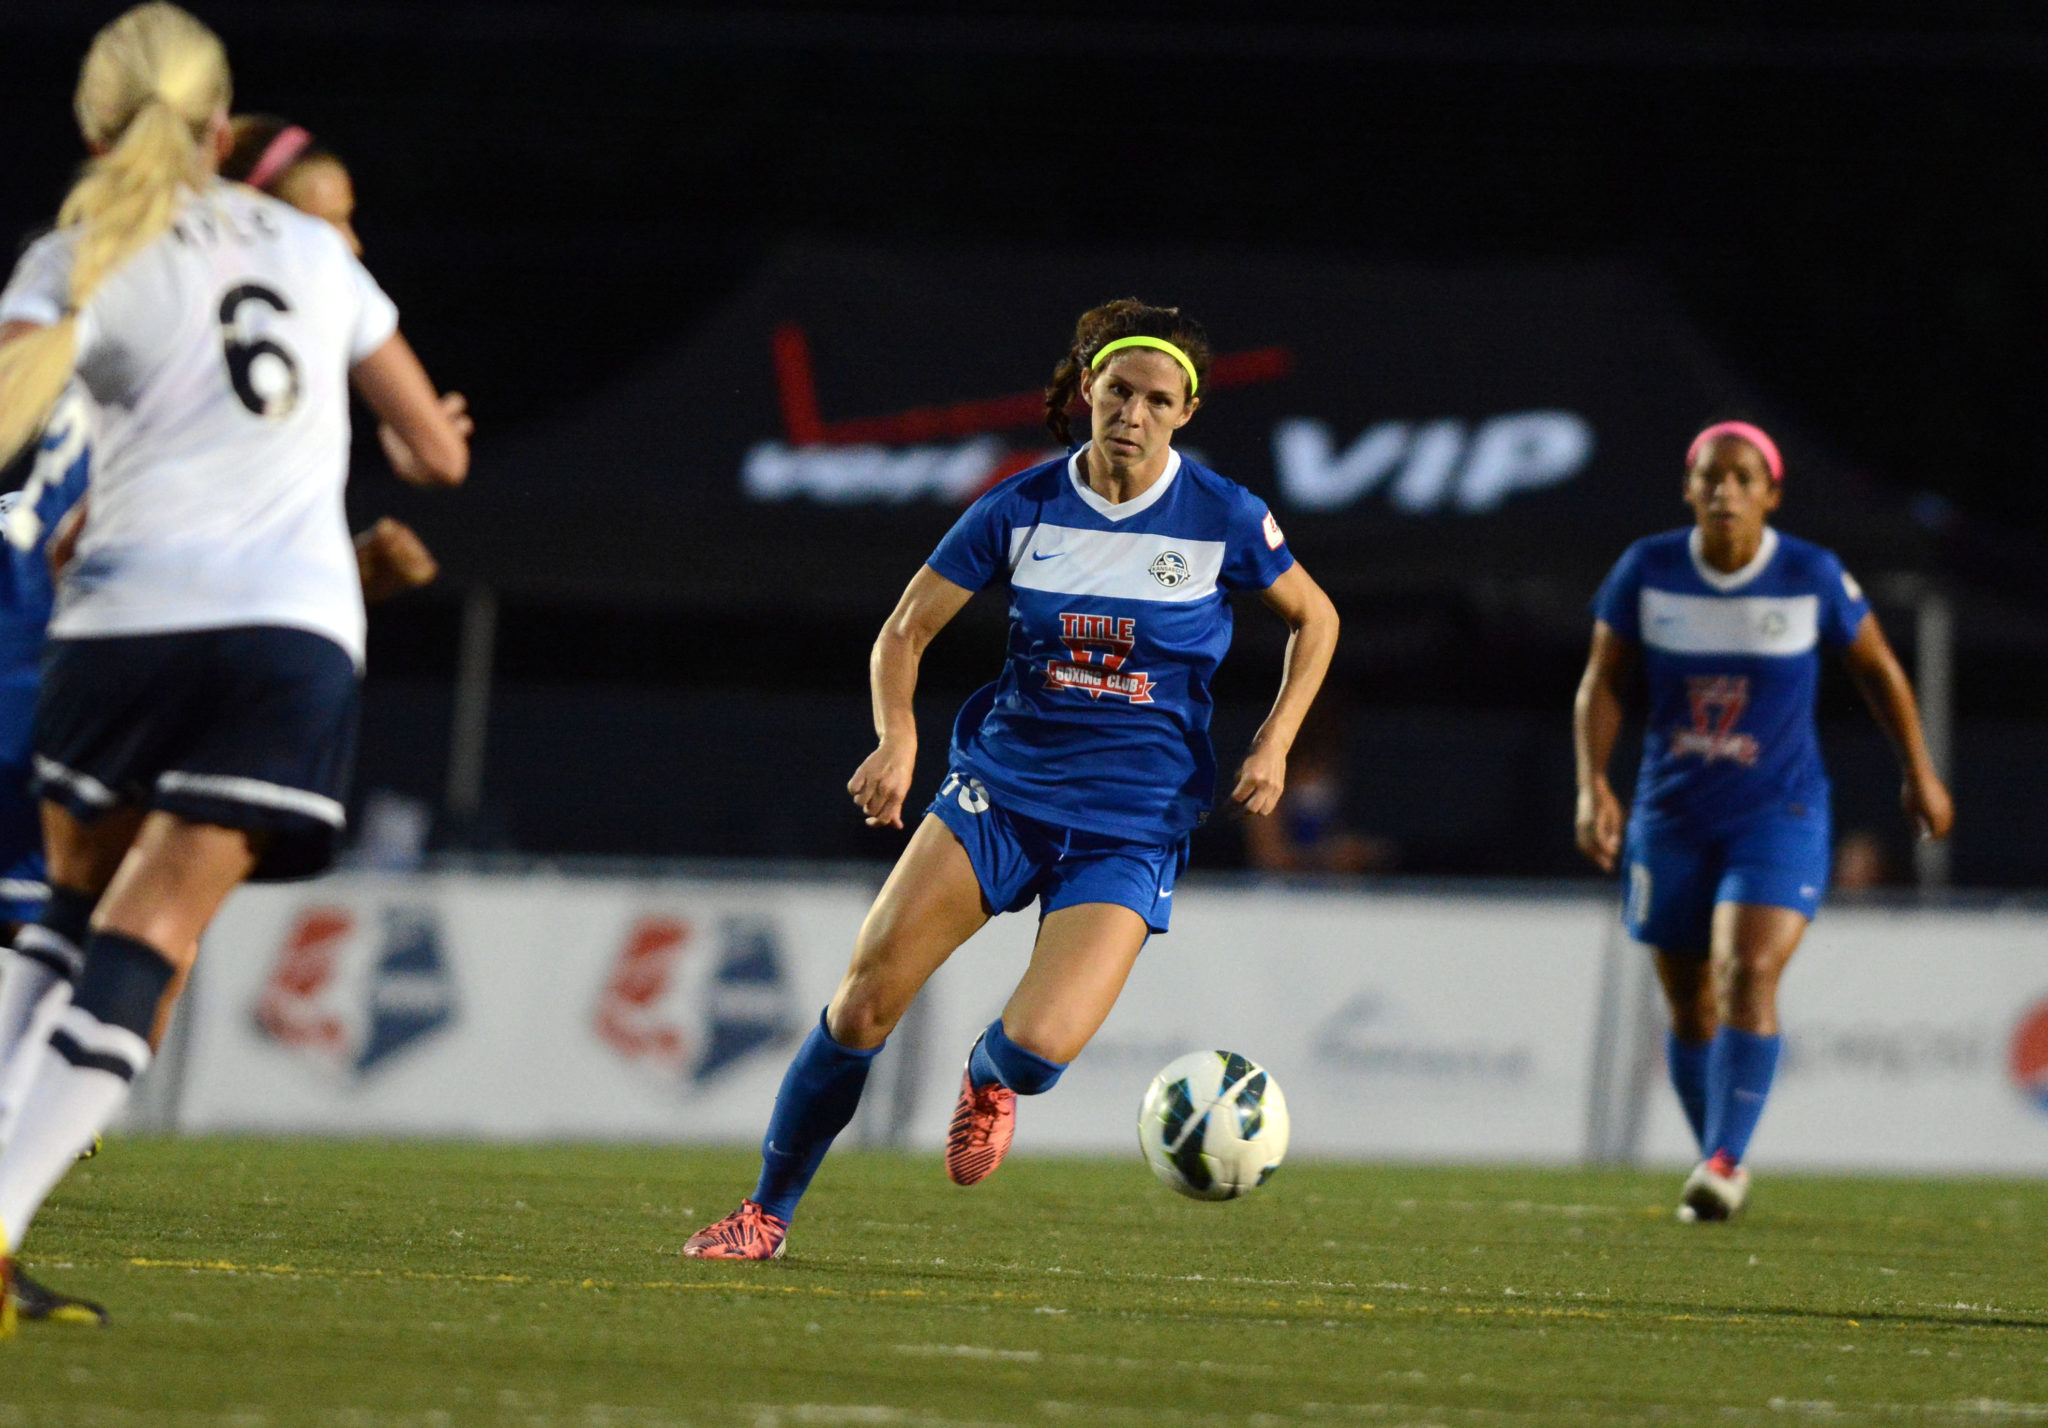 Erika Tymrak scored a goal for the all-time highlight reel, but the Dash had the last strike in a 2-2 draw. (Photo Copyright FC Kansas City/John Rieger)